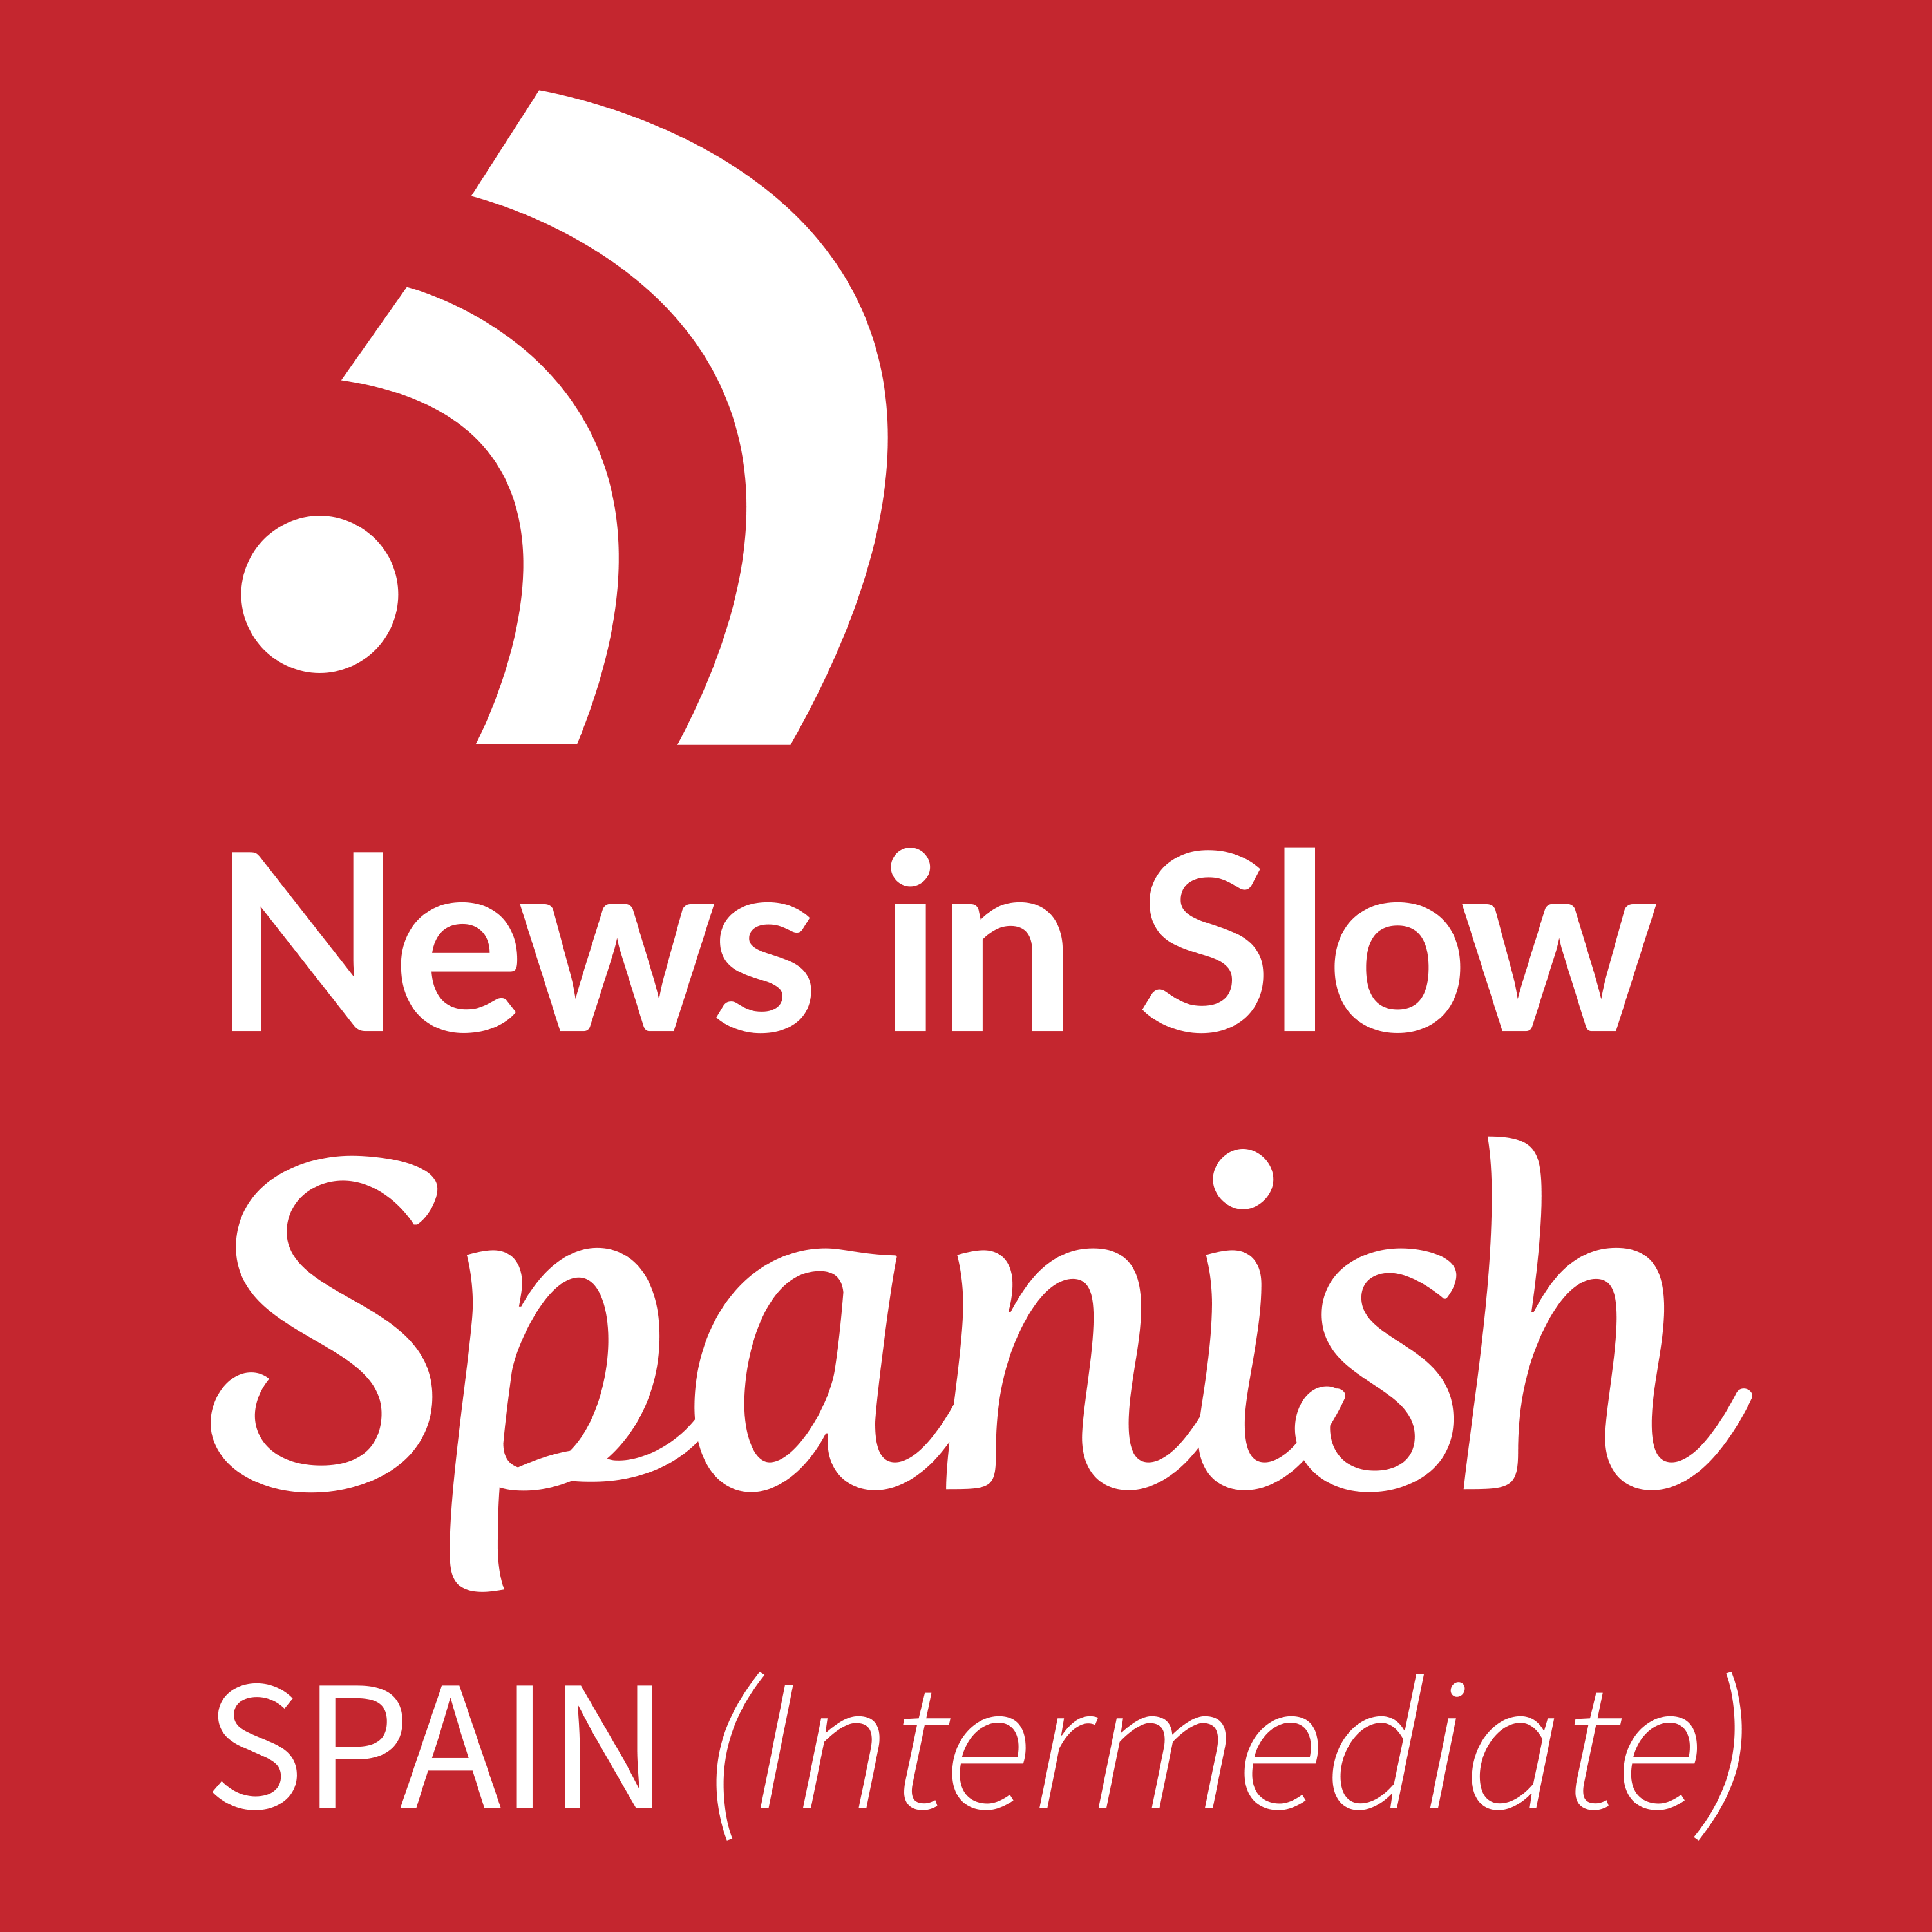 News in Slow Spanish - #405  - Weekly language learning show with discussion of current events